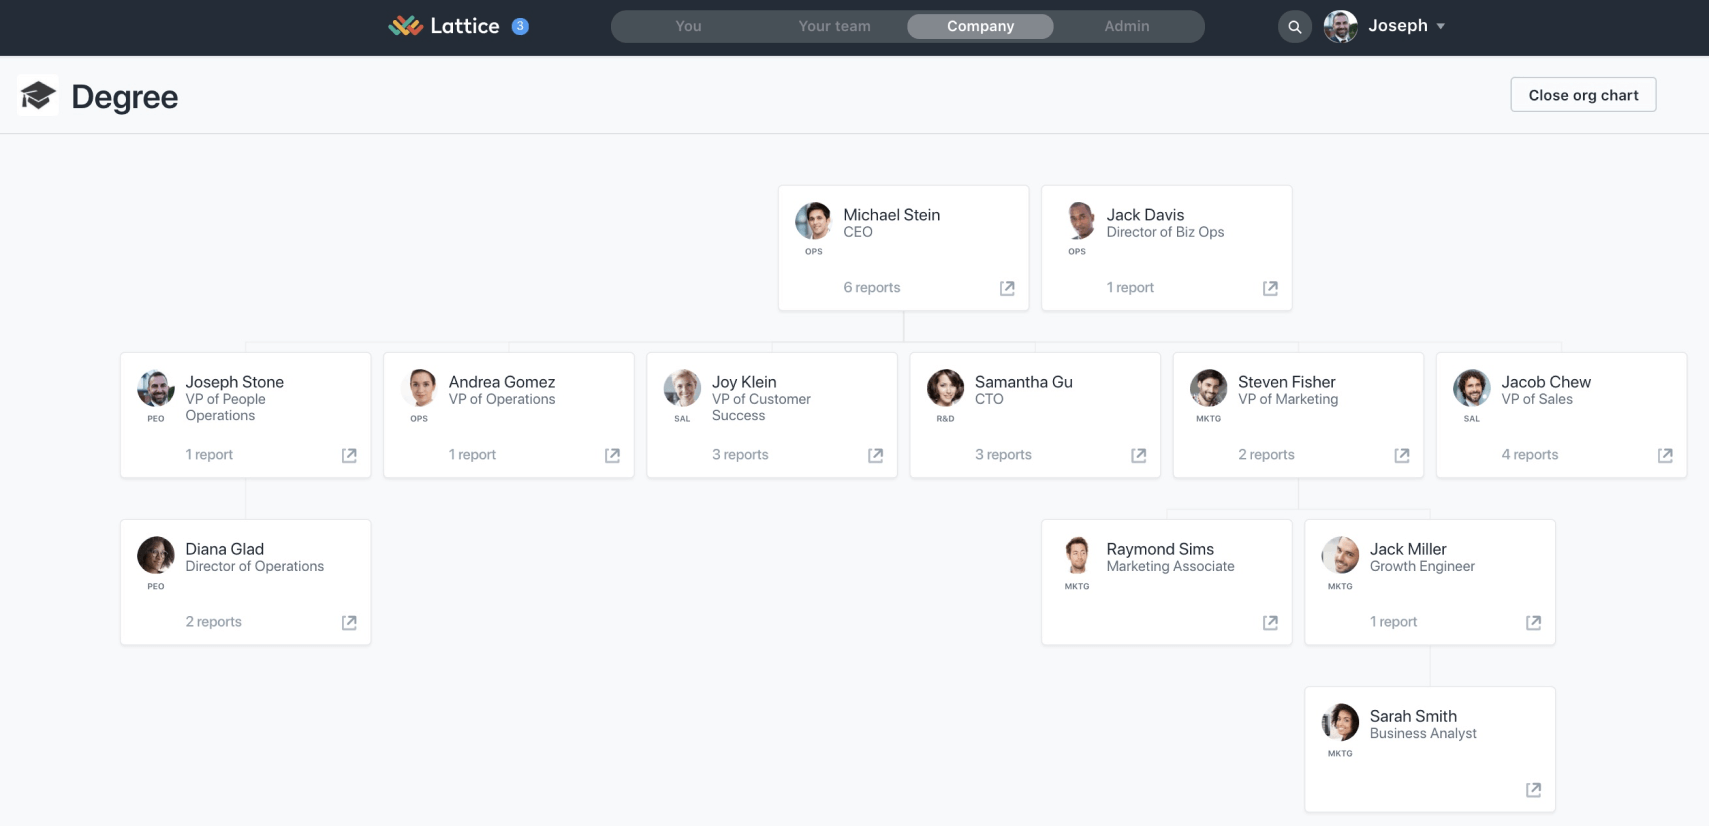 Lattice Org Chart is clean and simple